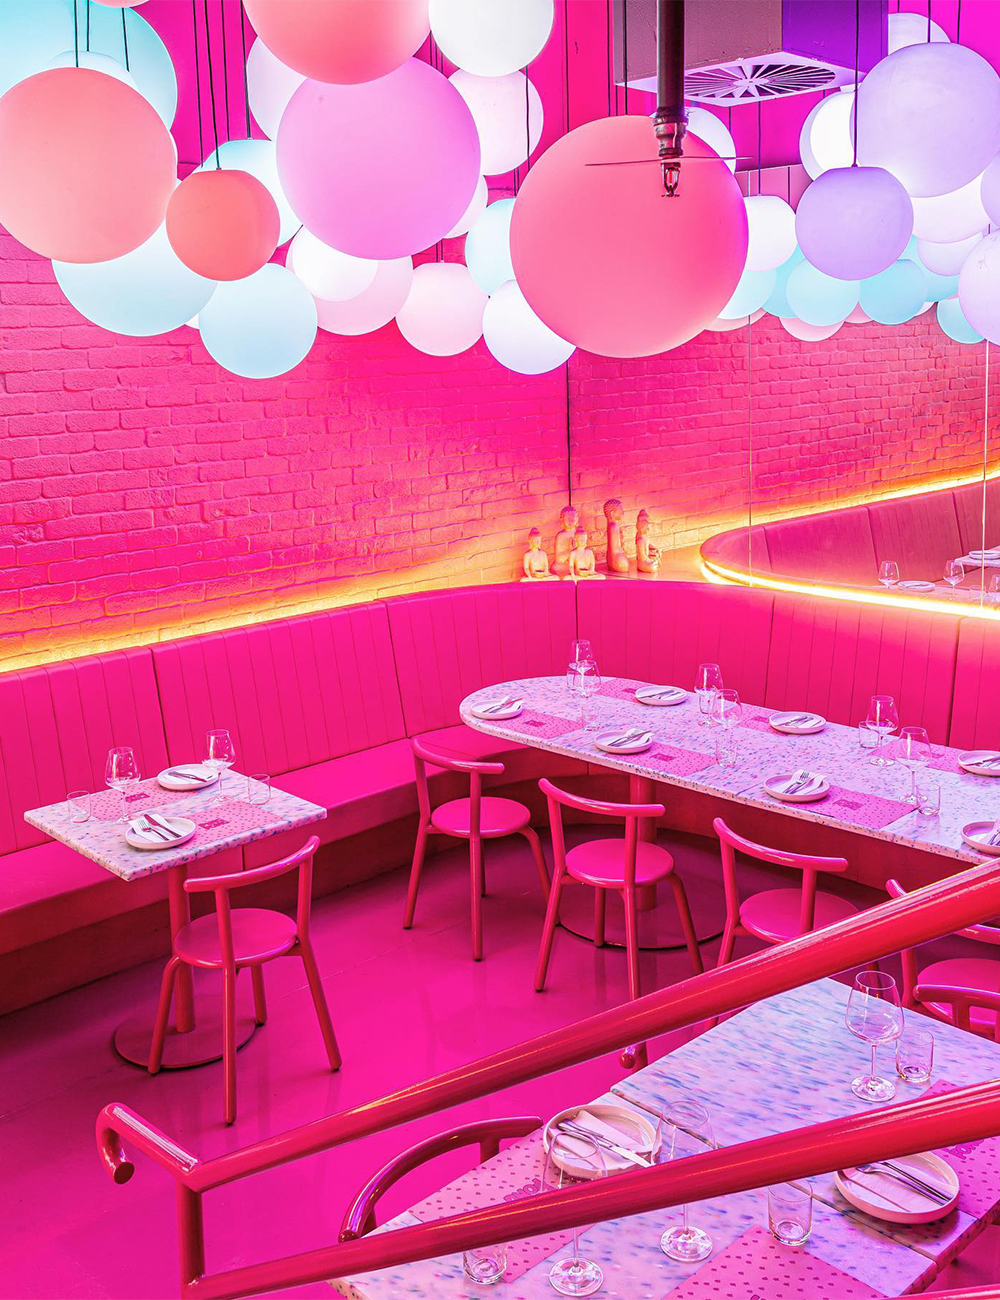 Hot Pink sitting area in restaurant with lots of pastel balls hanging from the ceiling